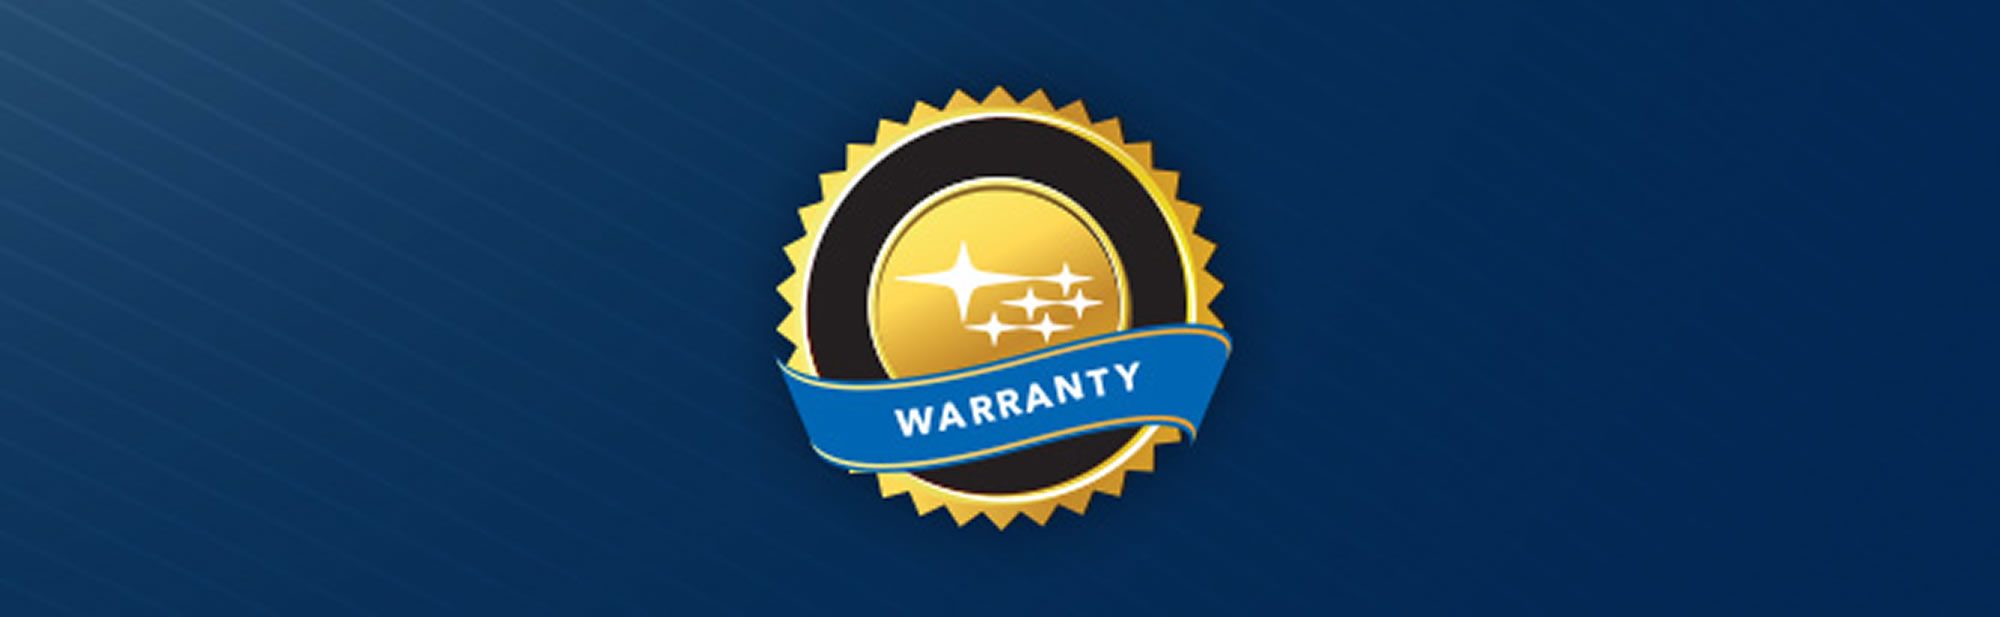 Subaru - a comprehensive warranty